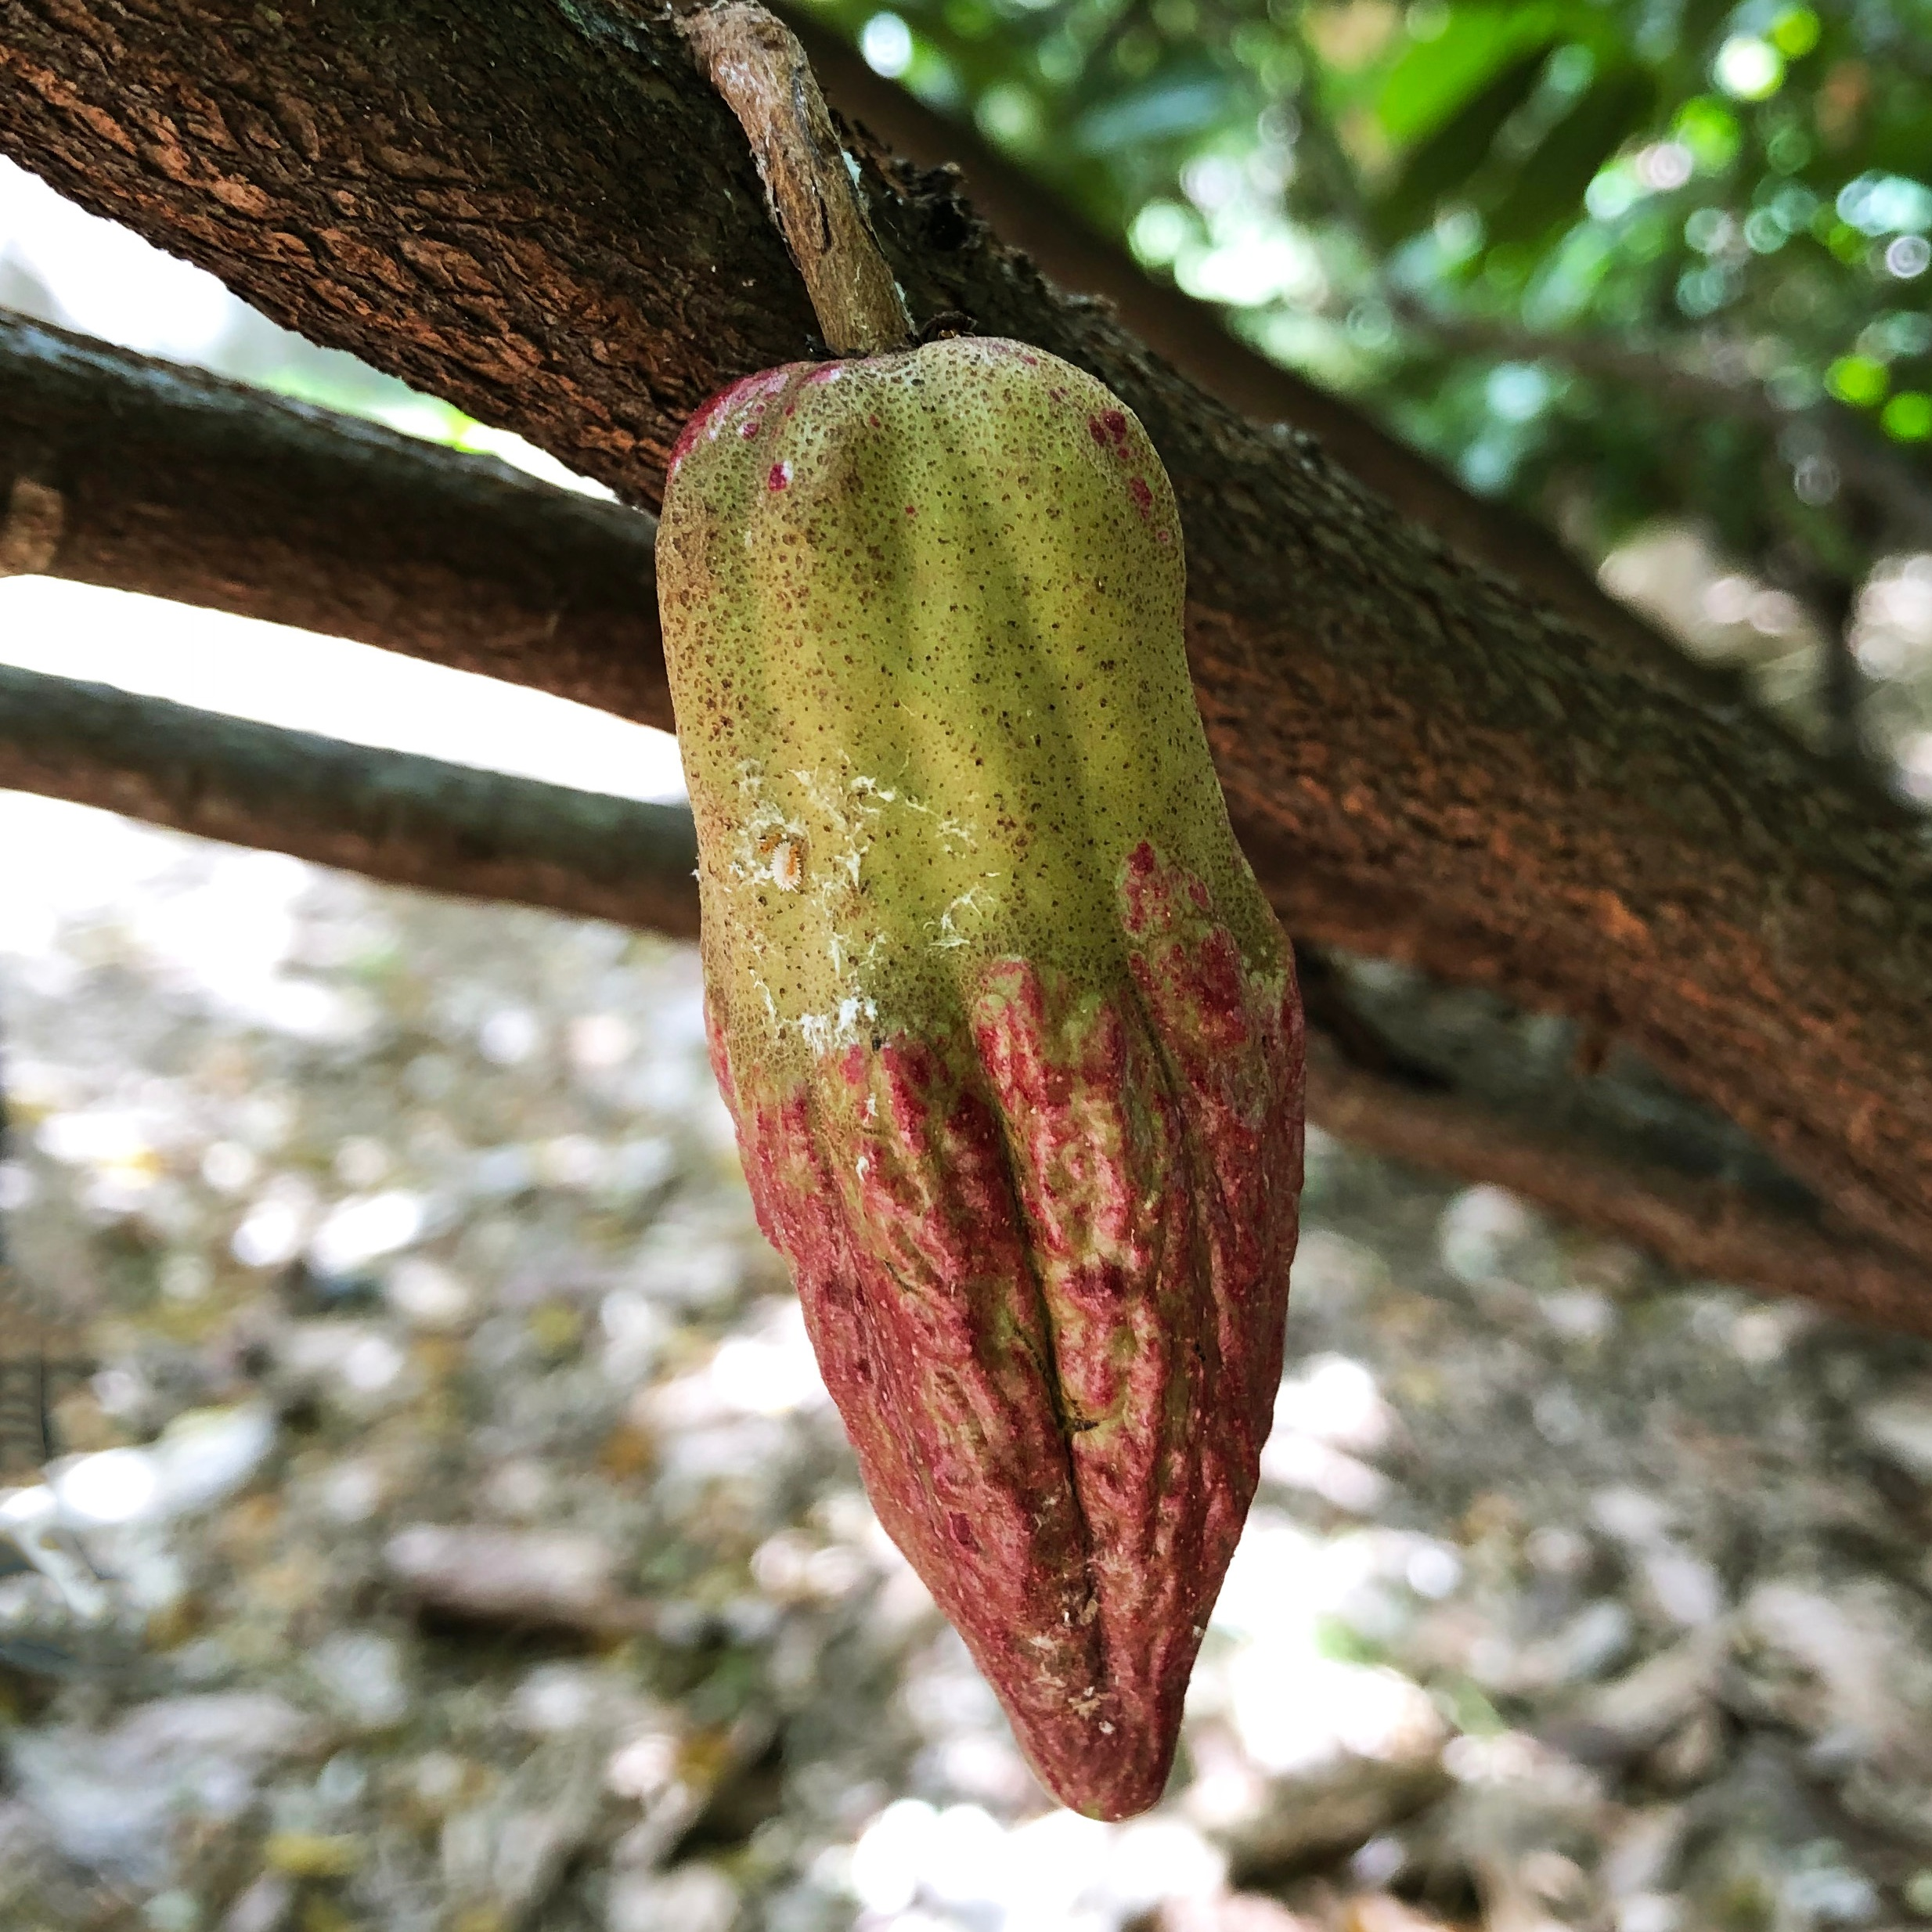 The cacao tree, also called Theobroma Cacao, is growing 20° south and north of our equator. Hot and humid - perfect conditions for cacao. Hawaii is therefore the only state in the US where cacao is growing. The tree is usually located in lower altitudes, about 700 meters above sea level or even lower. In higher altitudes the wind is stronger which could damages the crop. -